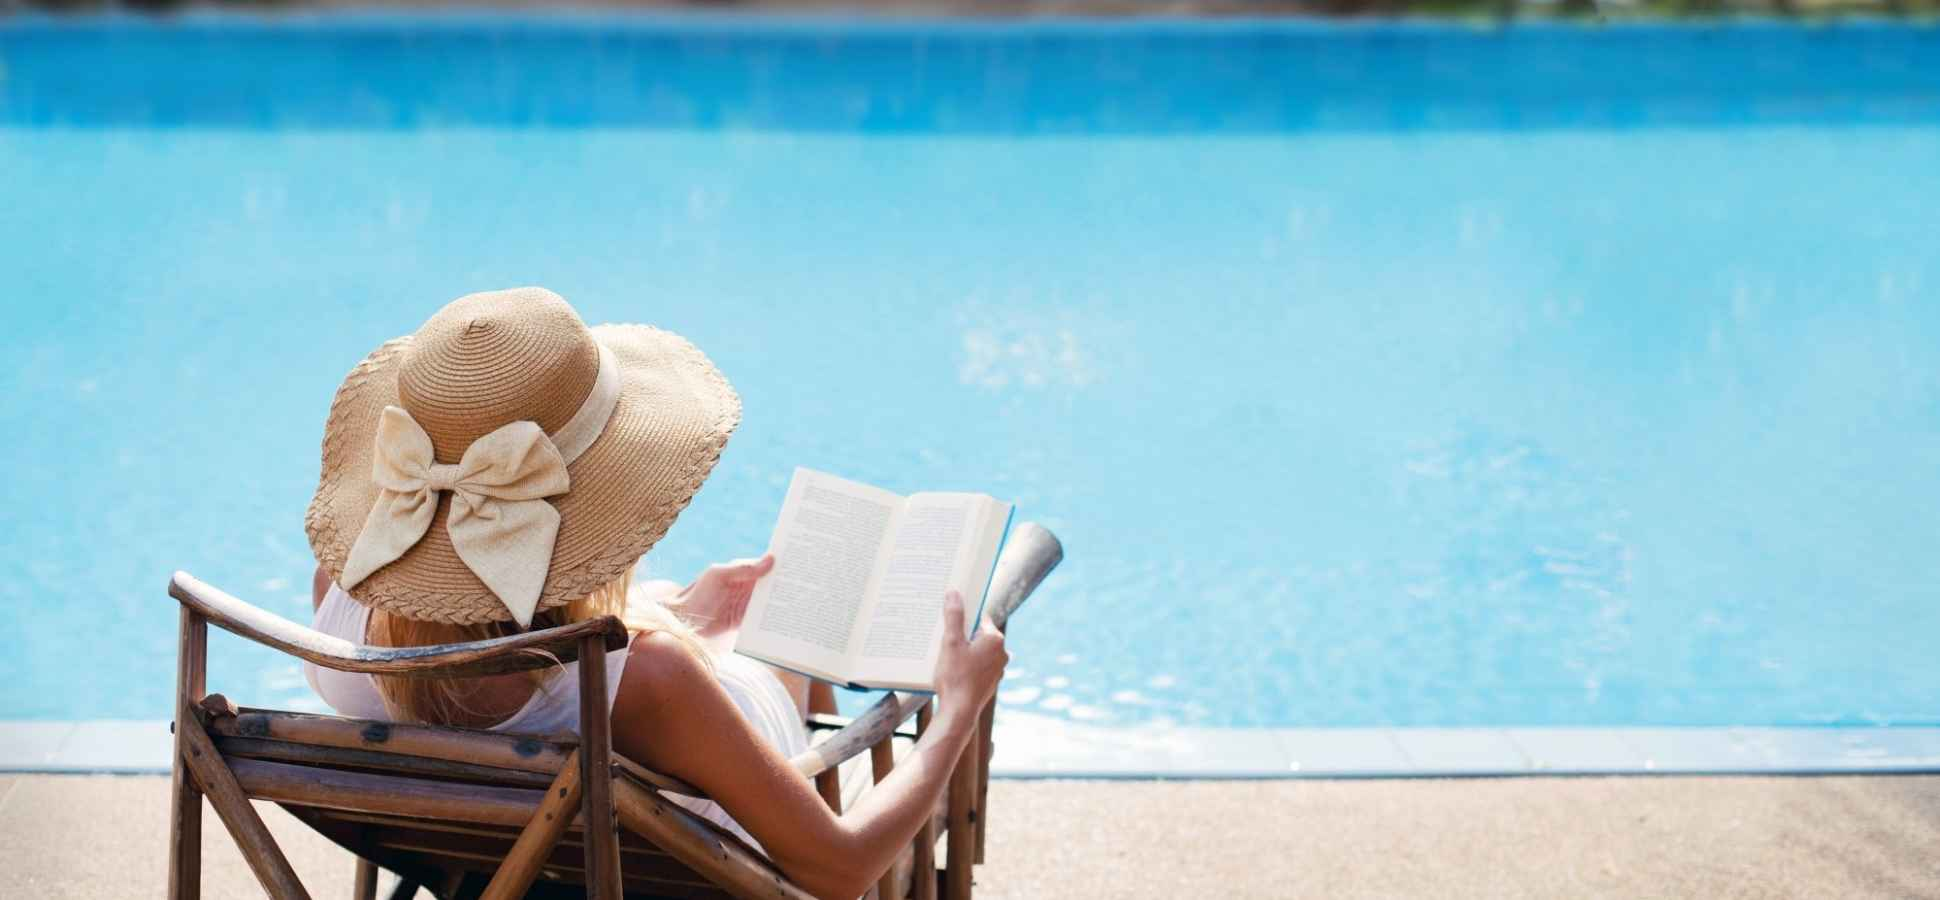 7 Thought-Provoking Books for Your Summer Reading List